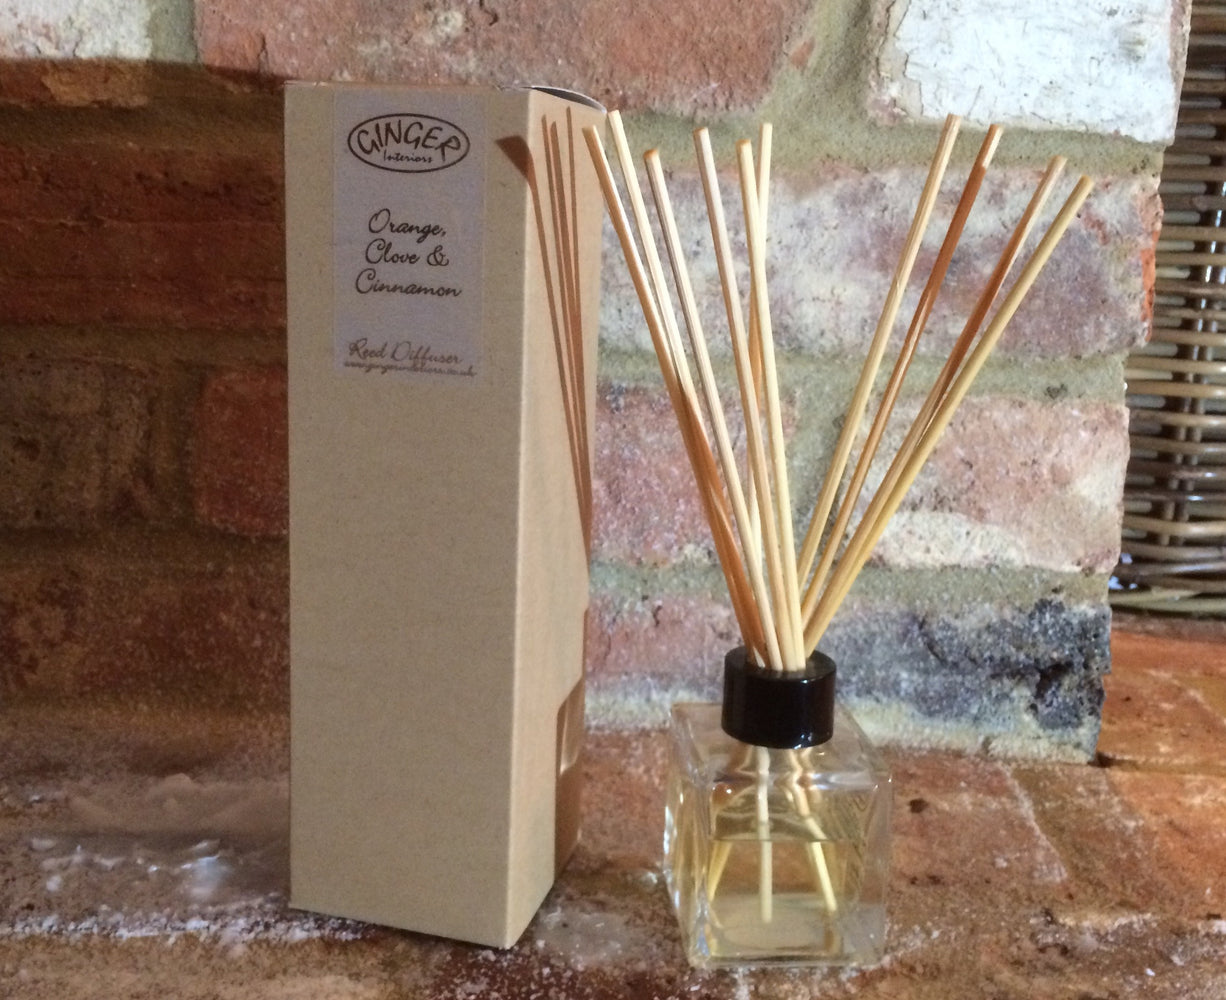 Christmas Diffuser 100ml - Orange Clove & Cinnamon